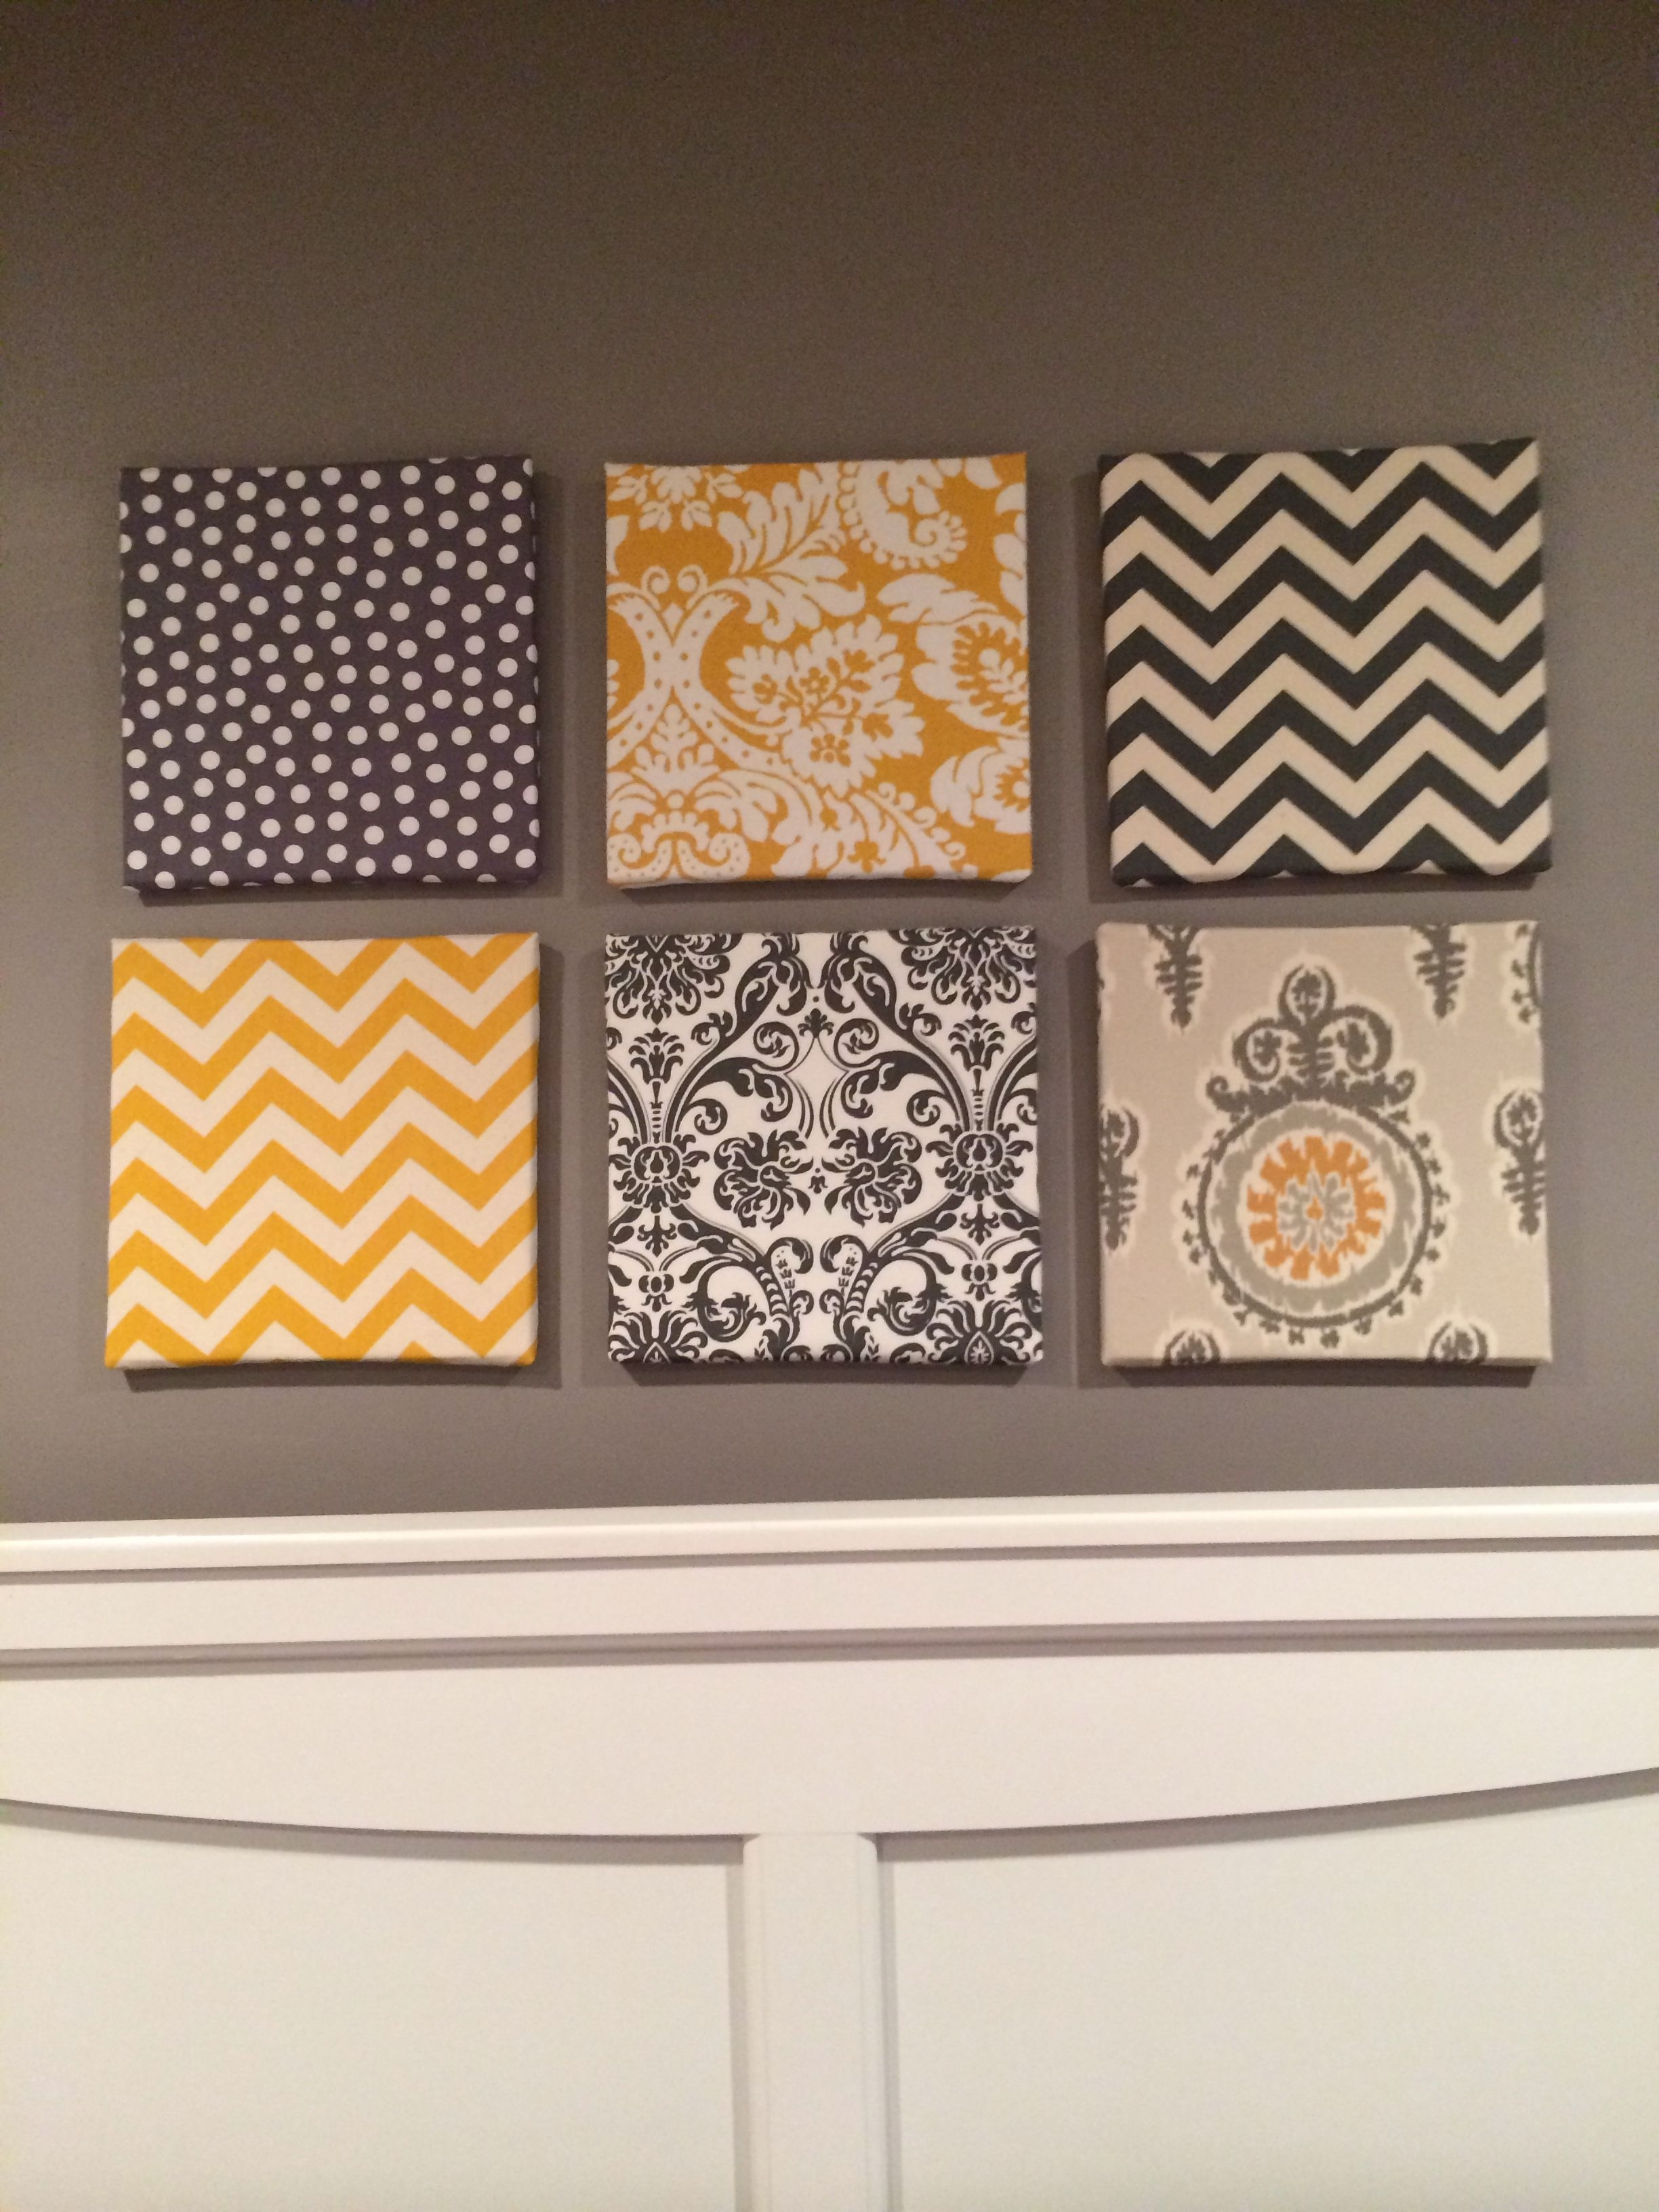 My Fabric Over Canvas Wall Art For My Gray And Yellow Themed Room Throughout Most Current Fabric Covered Wall Art (View 3 of 15)